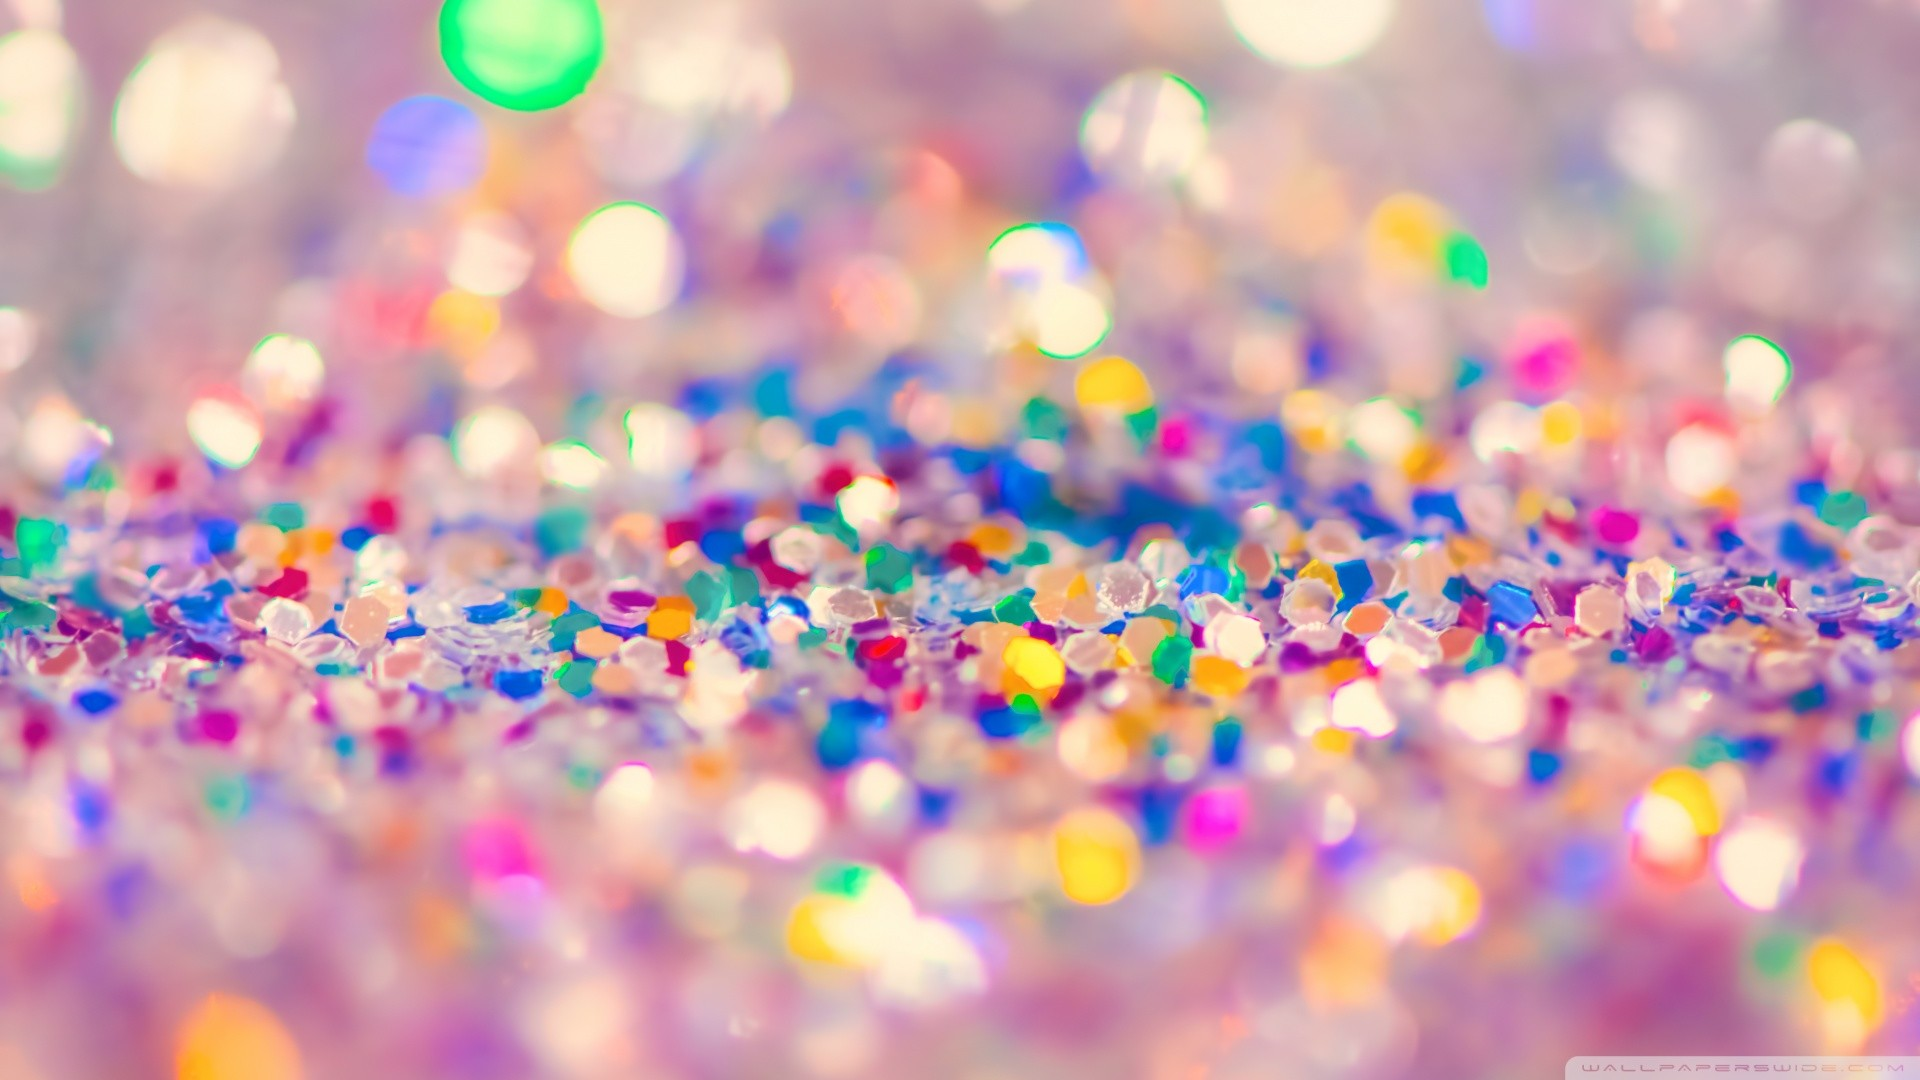 Free Glitter Wallpaper | Adorable Wallpapers | Pinterest | Glitter wallpaper  and Wallpaper